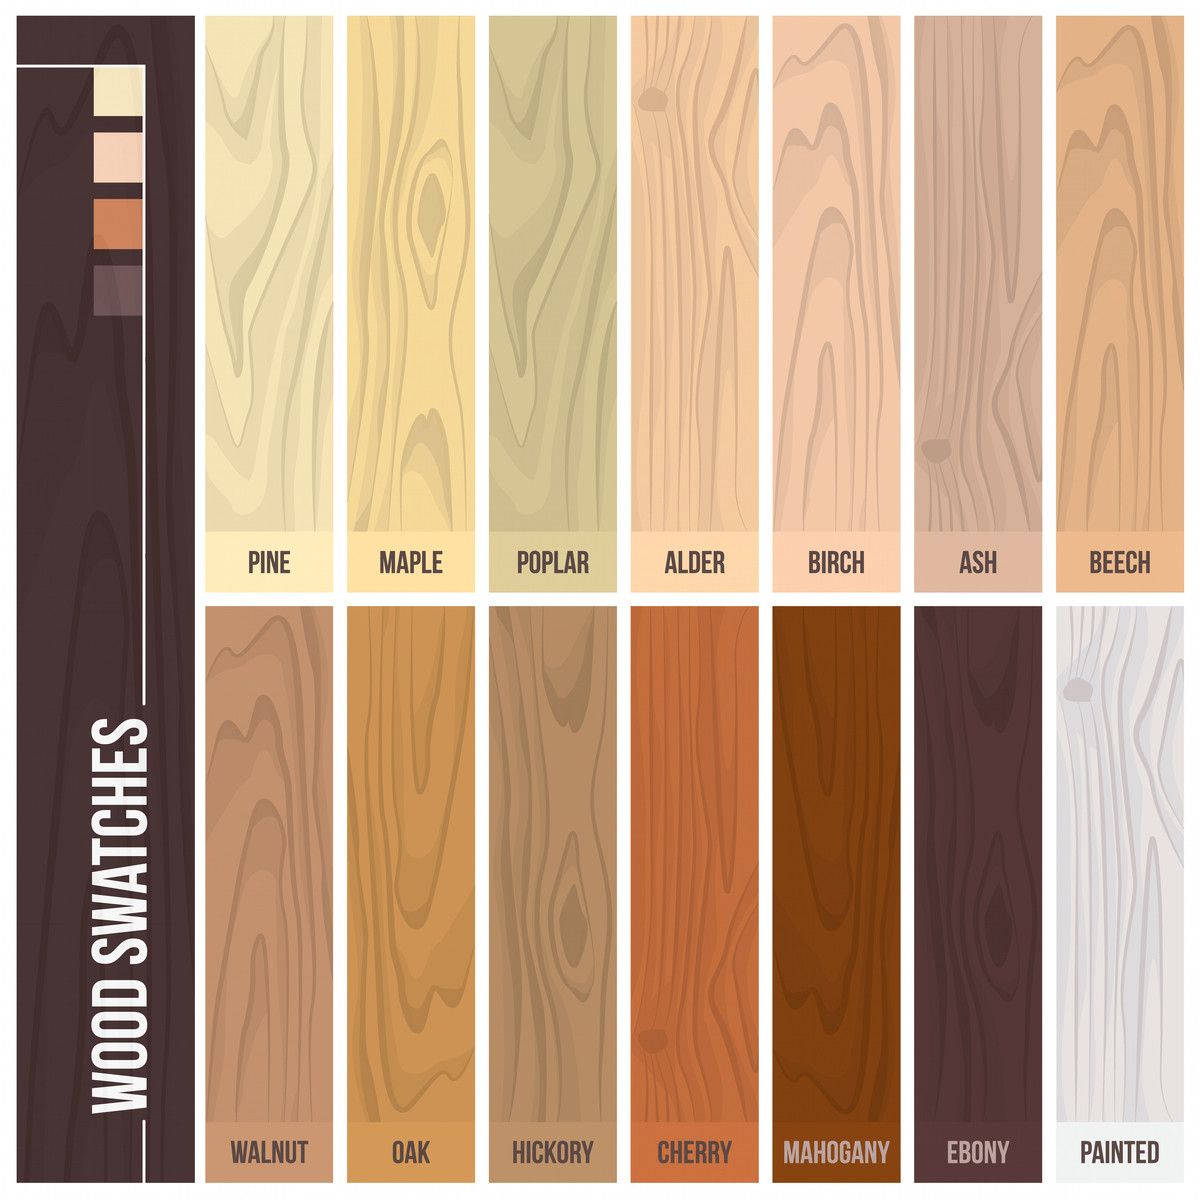 unfinished hardwood flooring cost of 12 types of hardwood flooring species styles edging dimensions within types of hardwood flooring illustrated guide